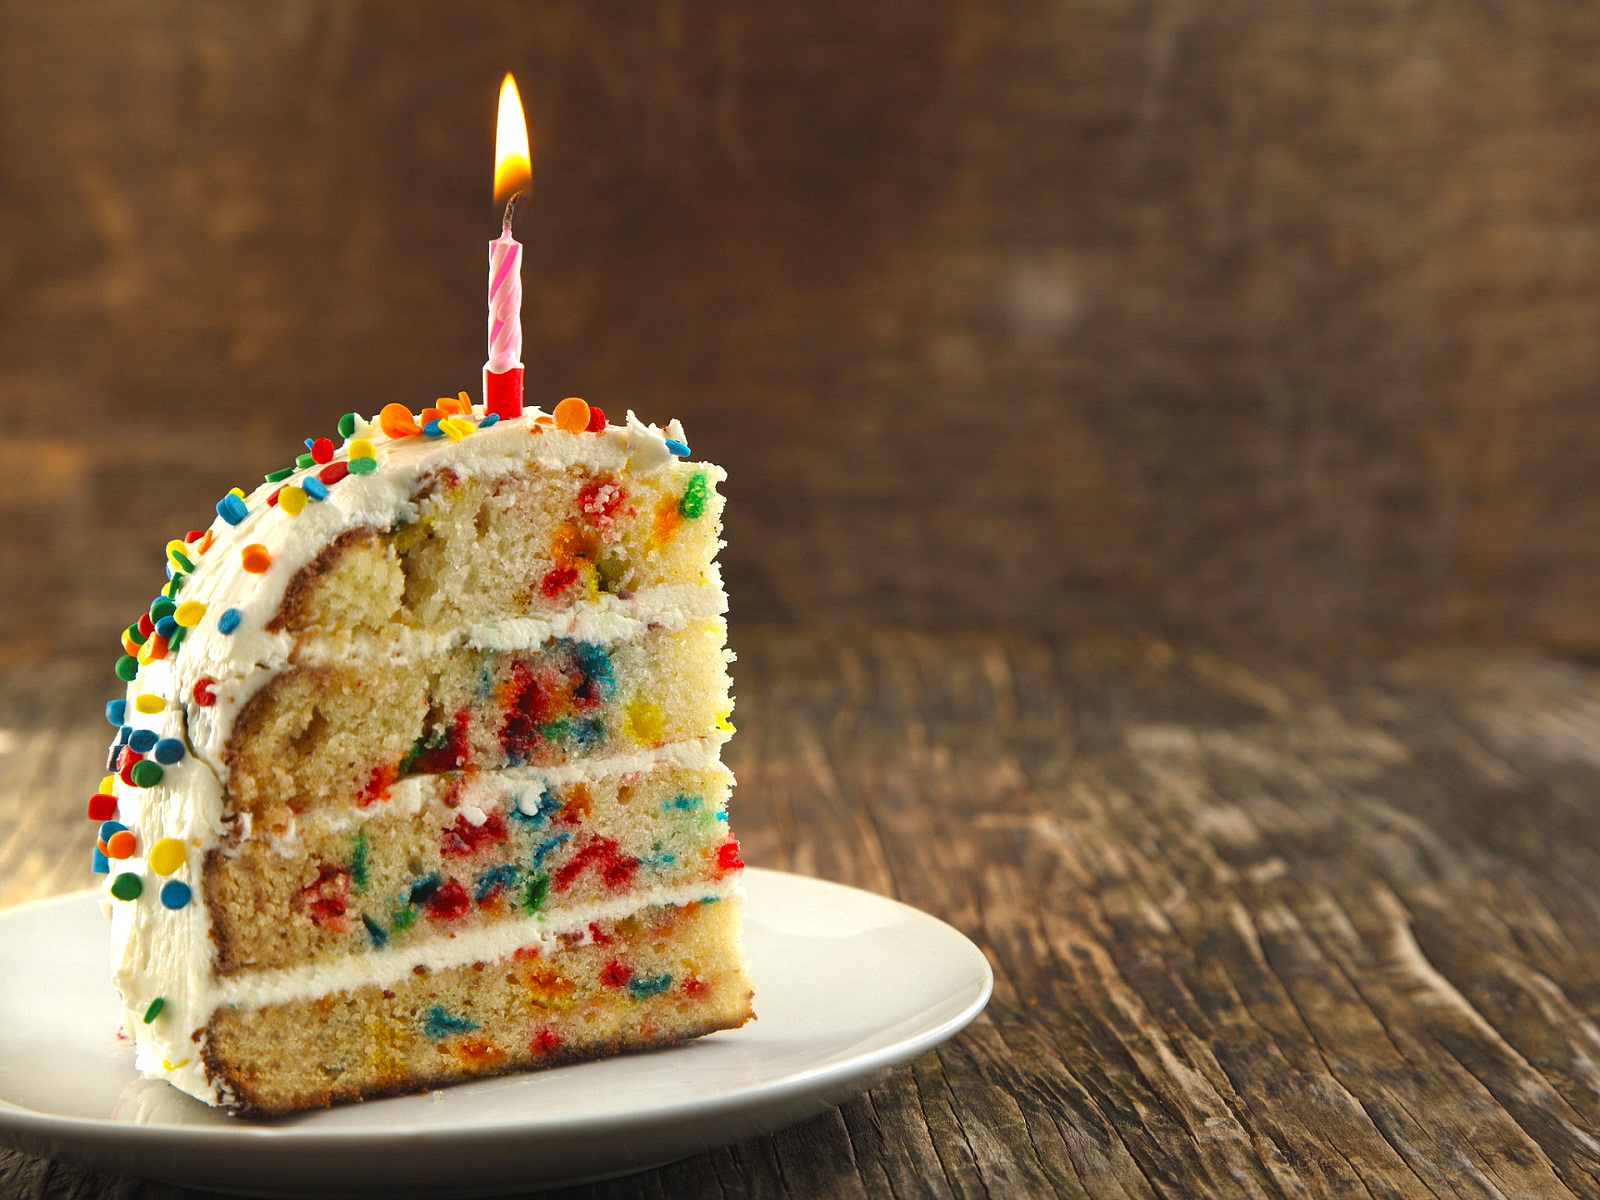 birthday images hd wallpaper ; Happy-birthday-cake-HD-wallpaper